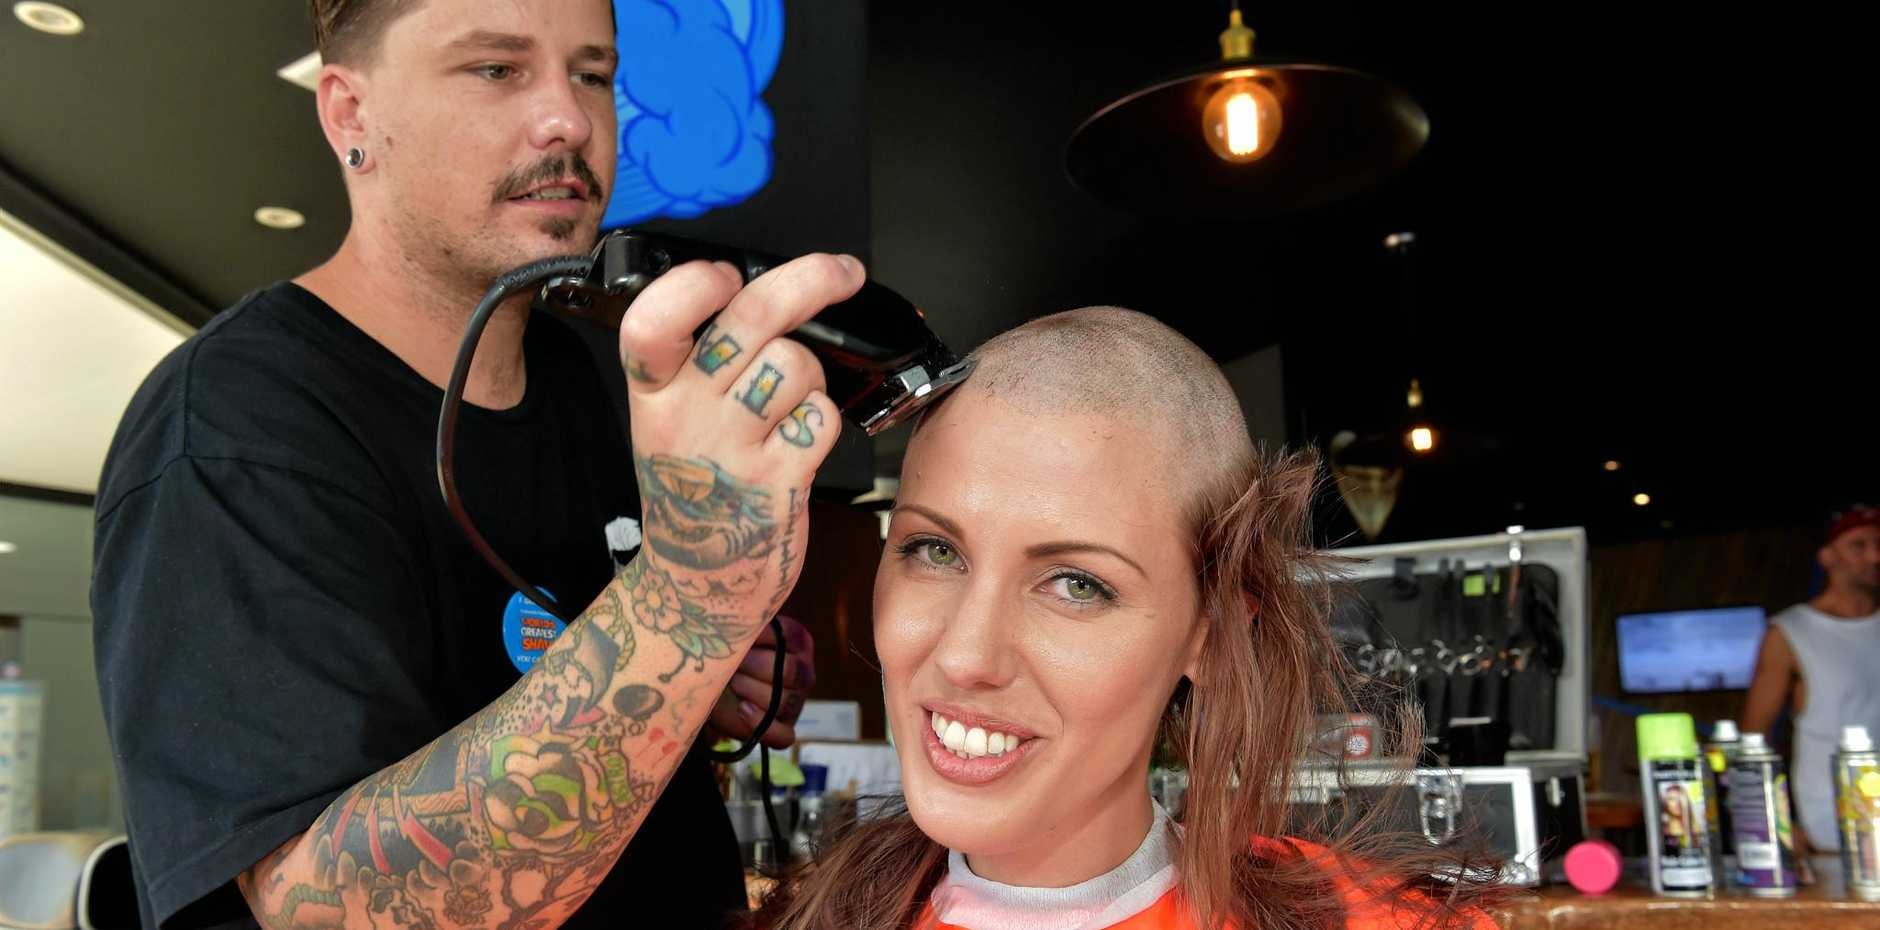 CHOP CHOP: Laura Hetherington shaves her hair, raising money the Leukaemia Foundation, at Sneaky Baron, which held a Shave for a Cure event in Maroochydore.